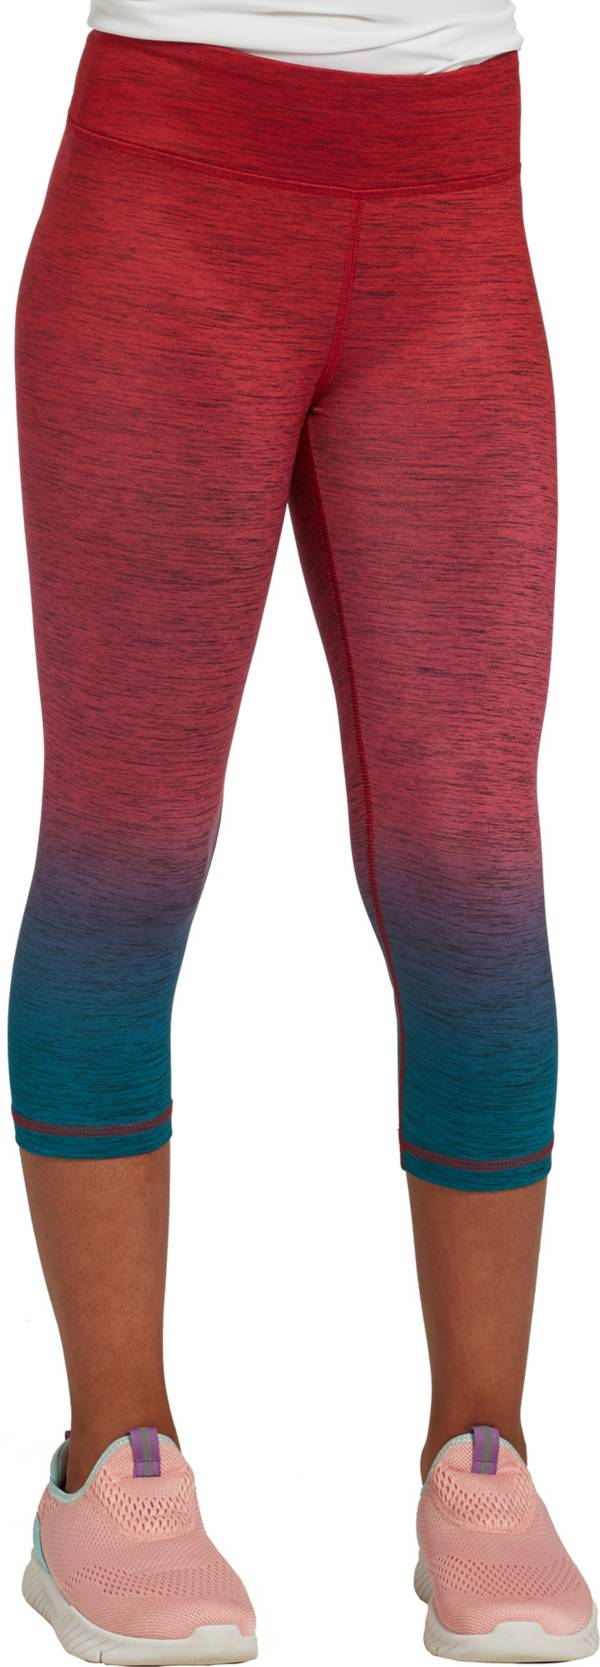 DSG Girls' Printed Performance Capris product image